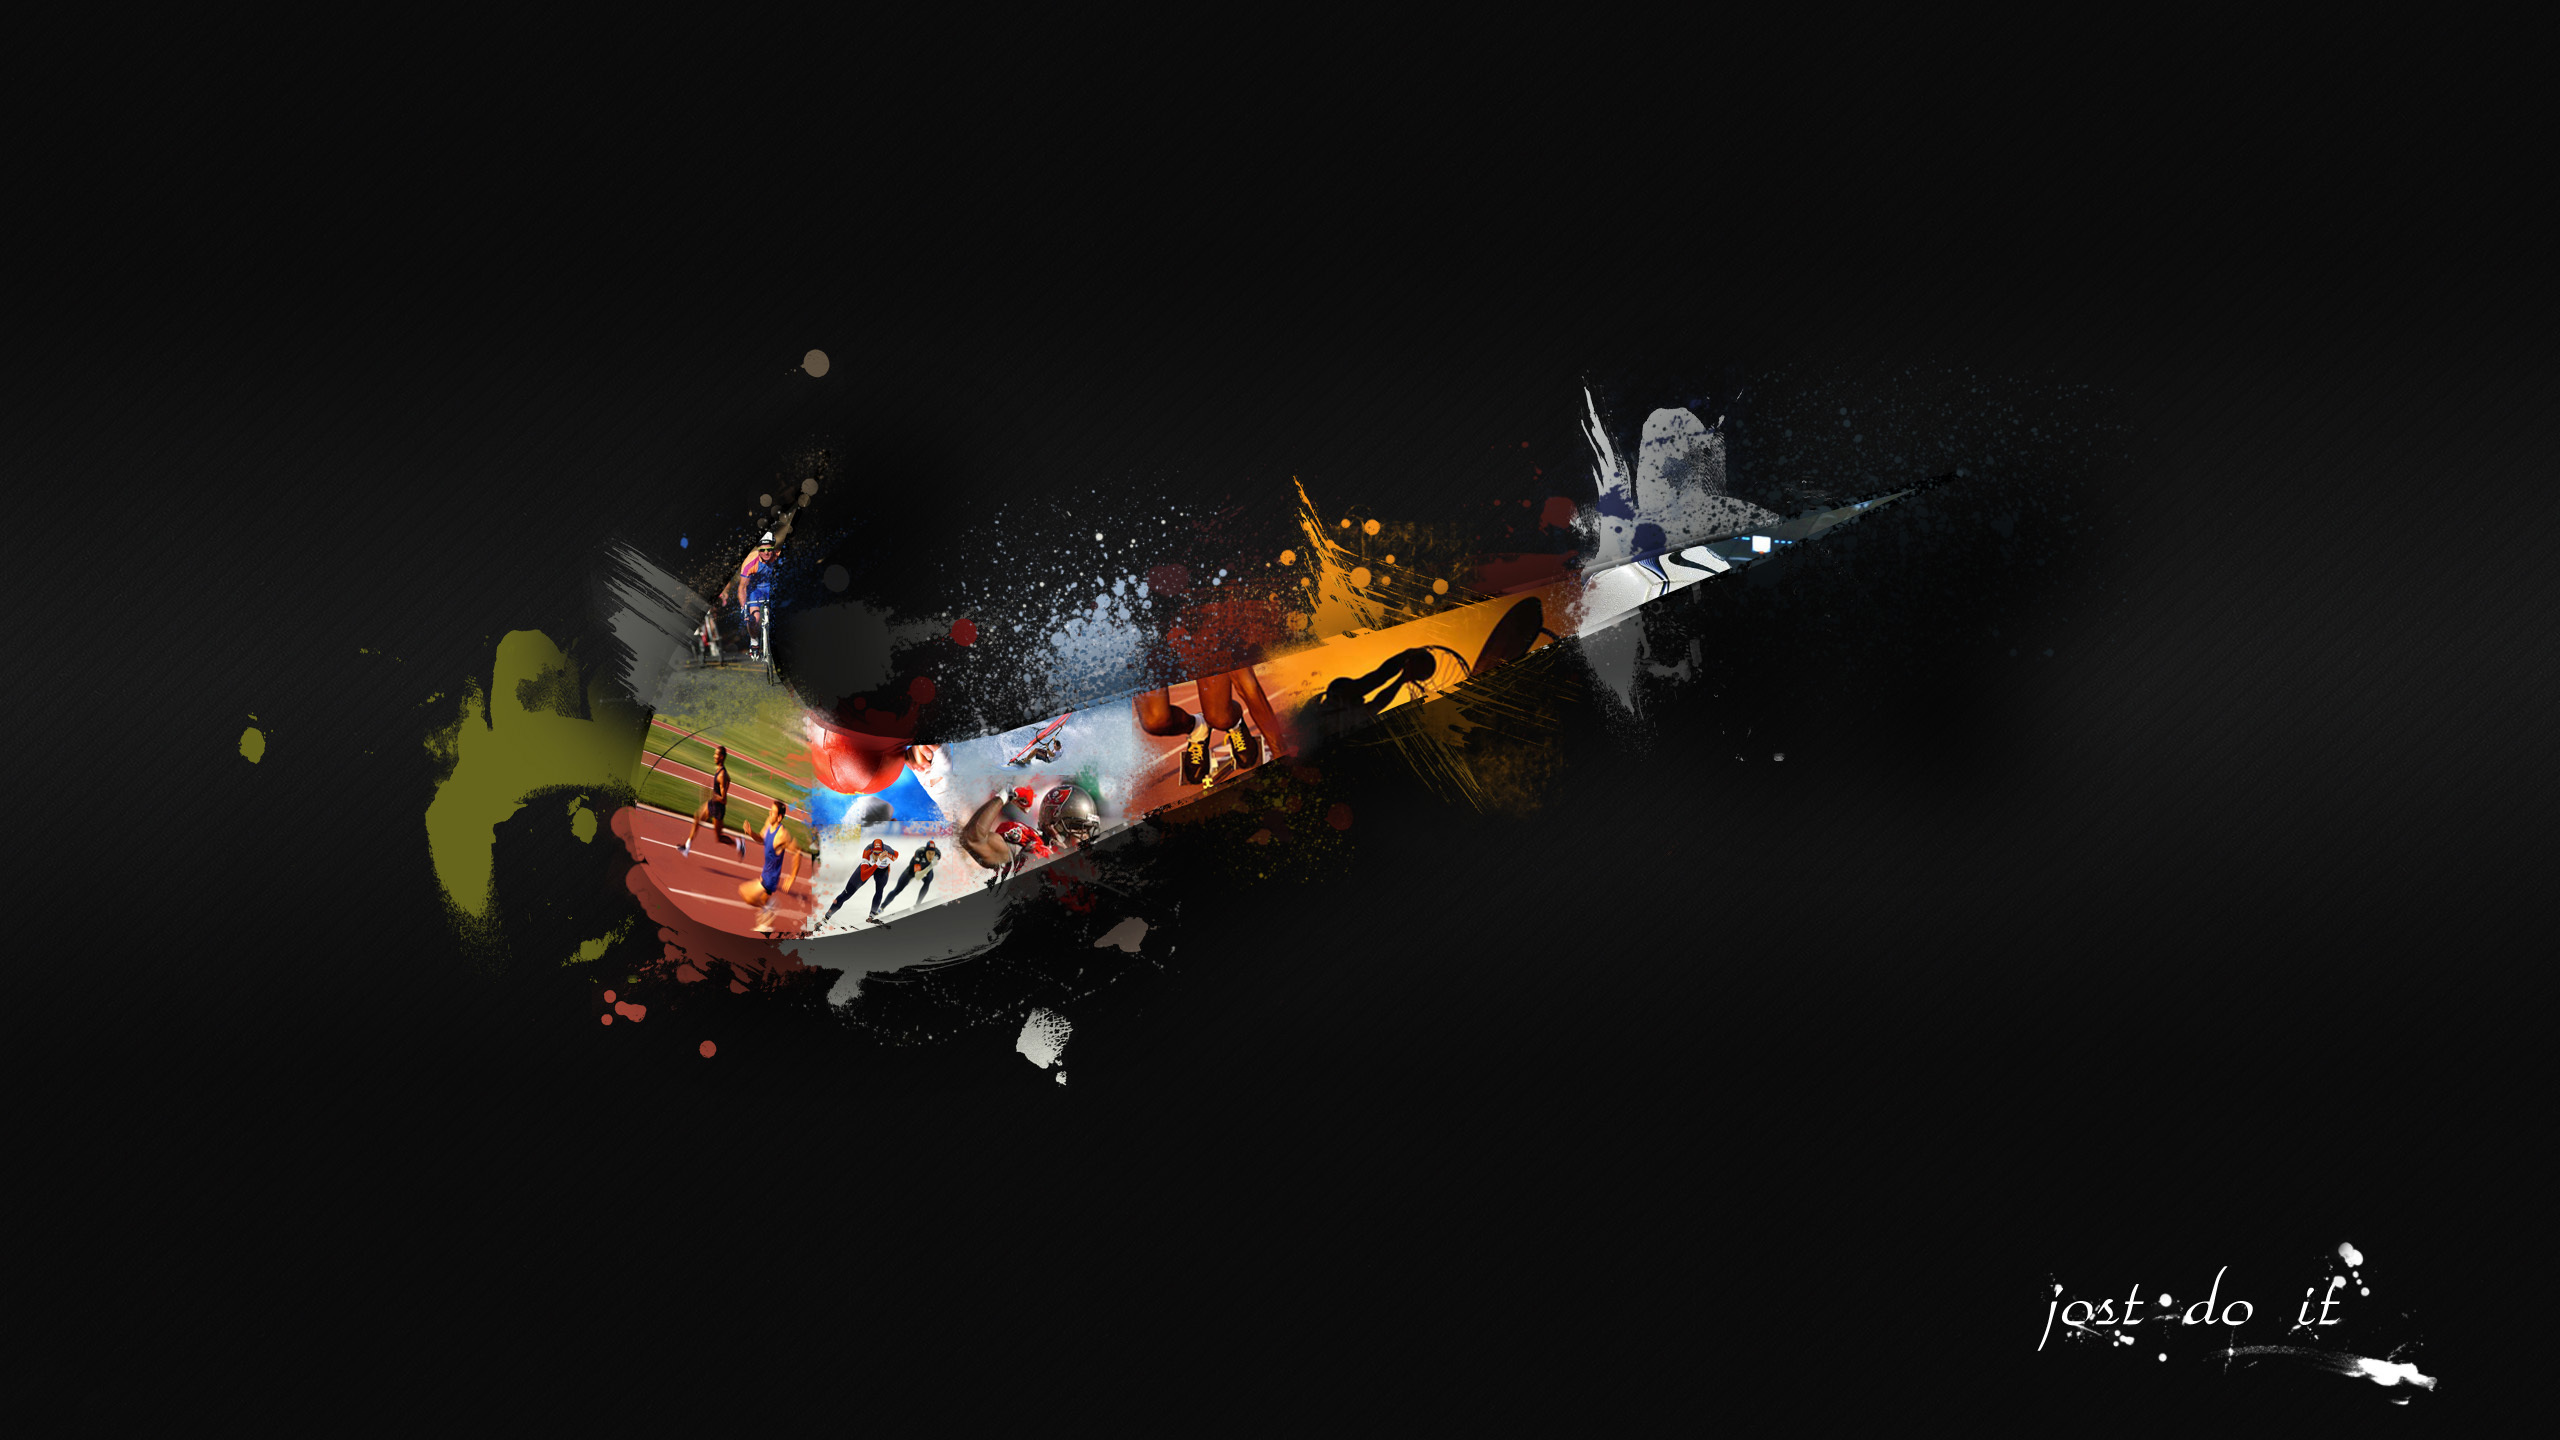 Nike Hd Wallpaper 2560x1440 54092